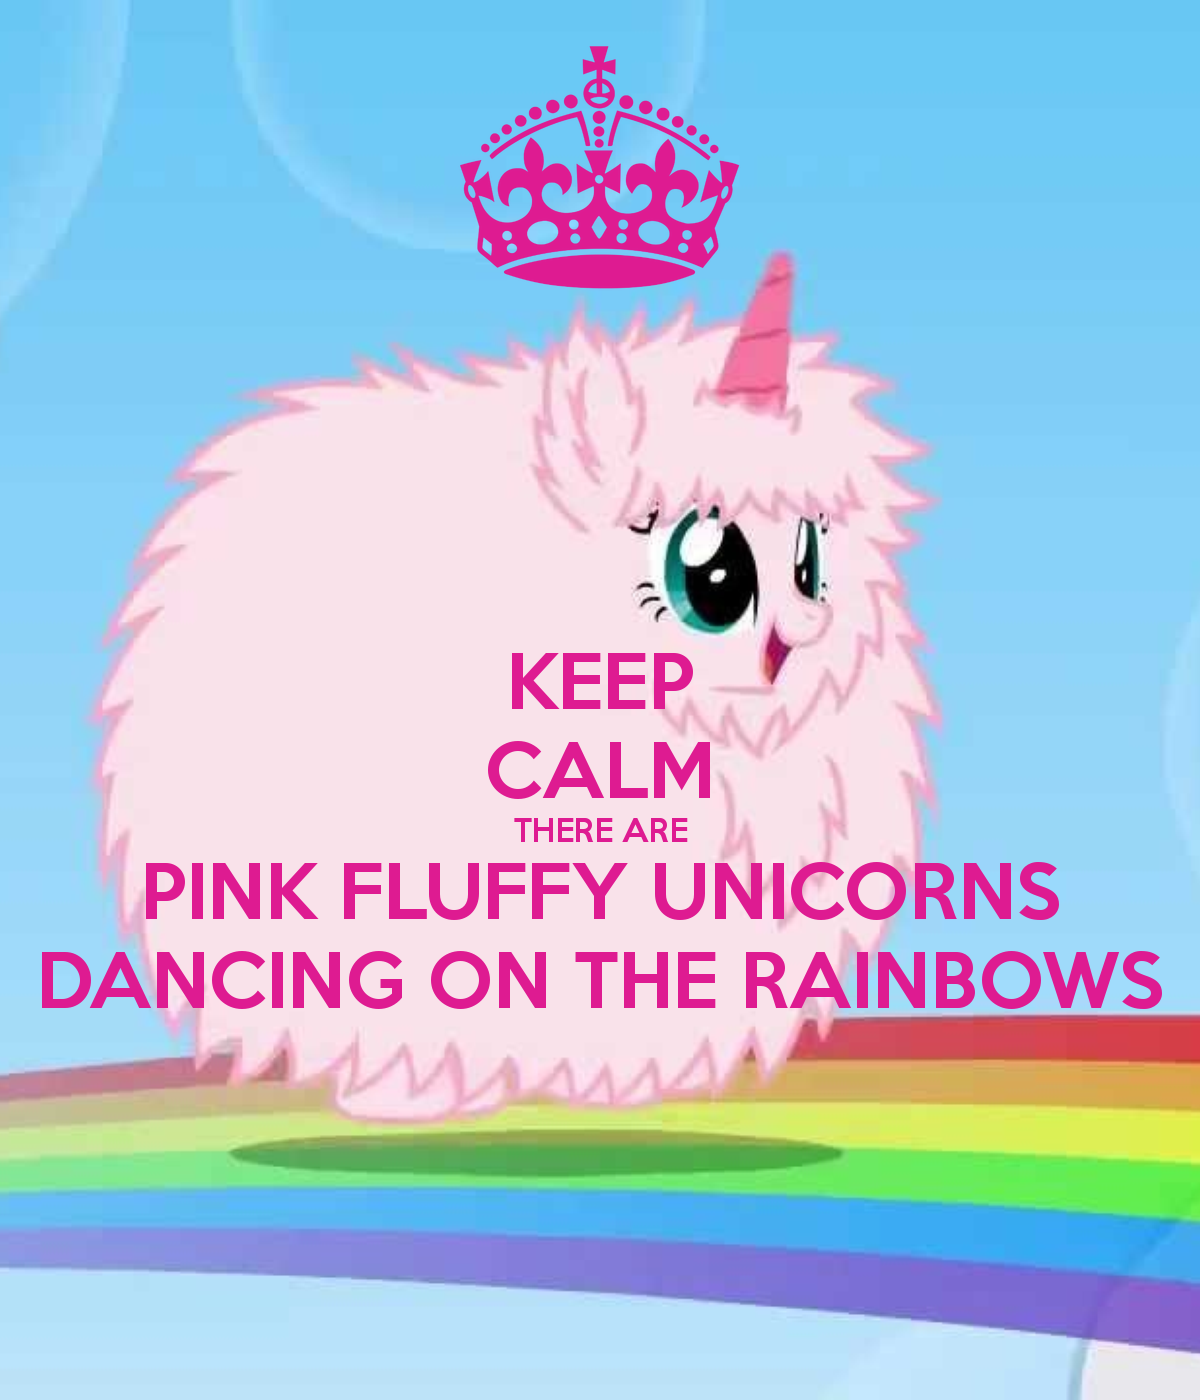 Keep Calm There Are Pink Fluffy Unicorns Dancing On The Rainbows Unicorn Unicorn Pictures Unicorn Quotes